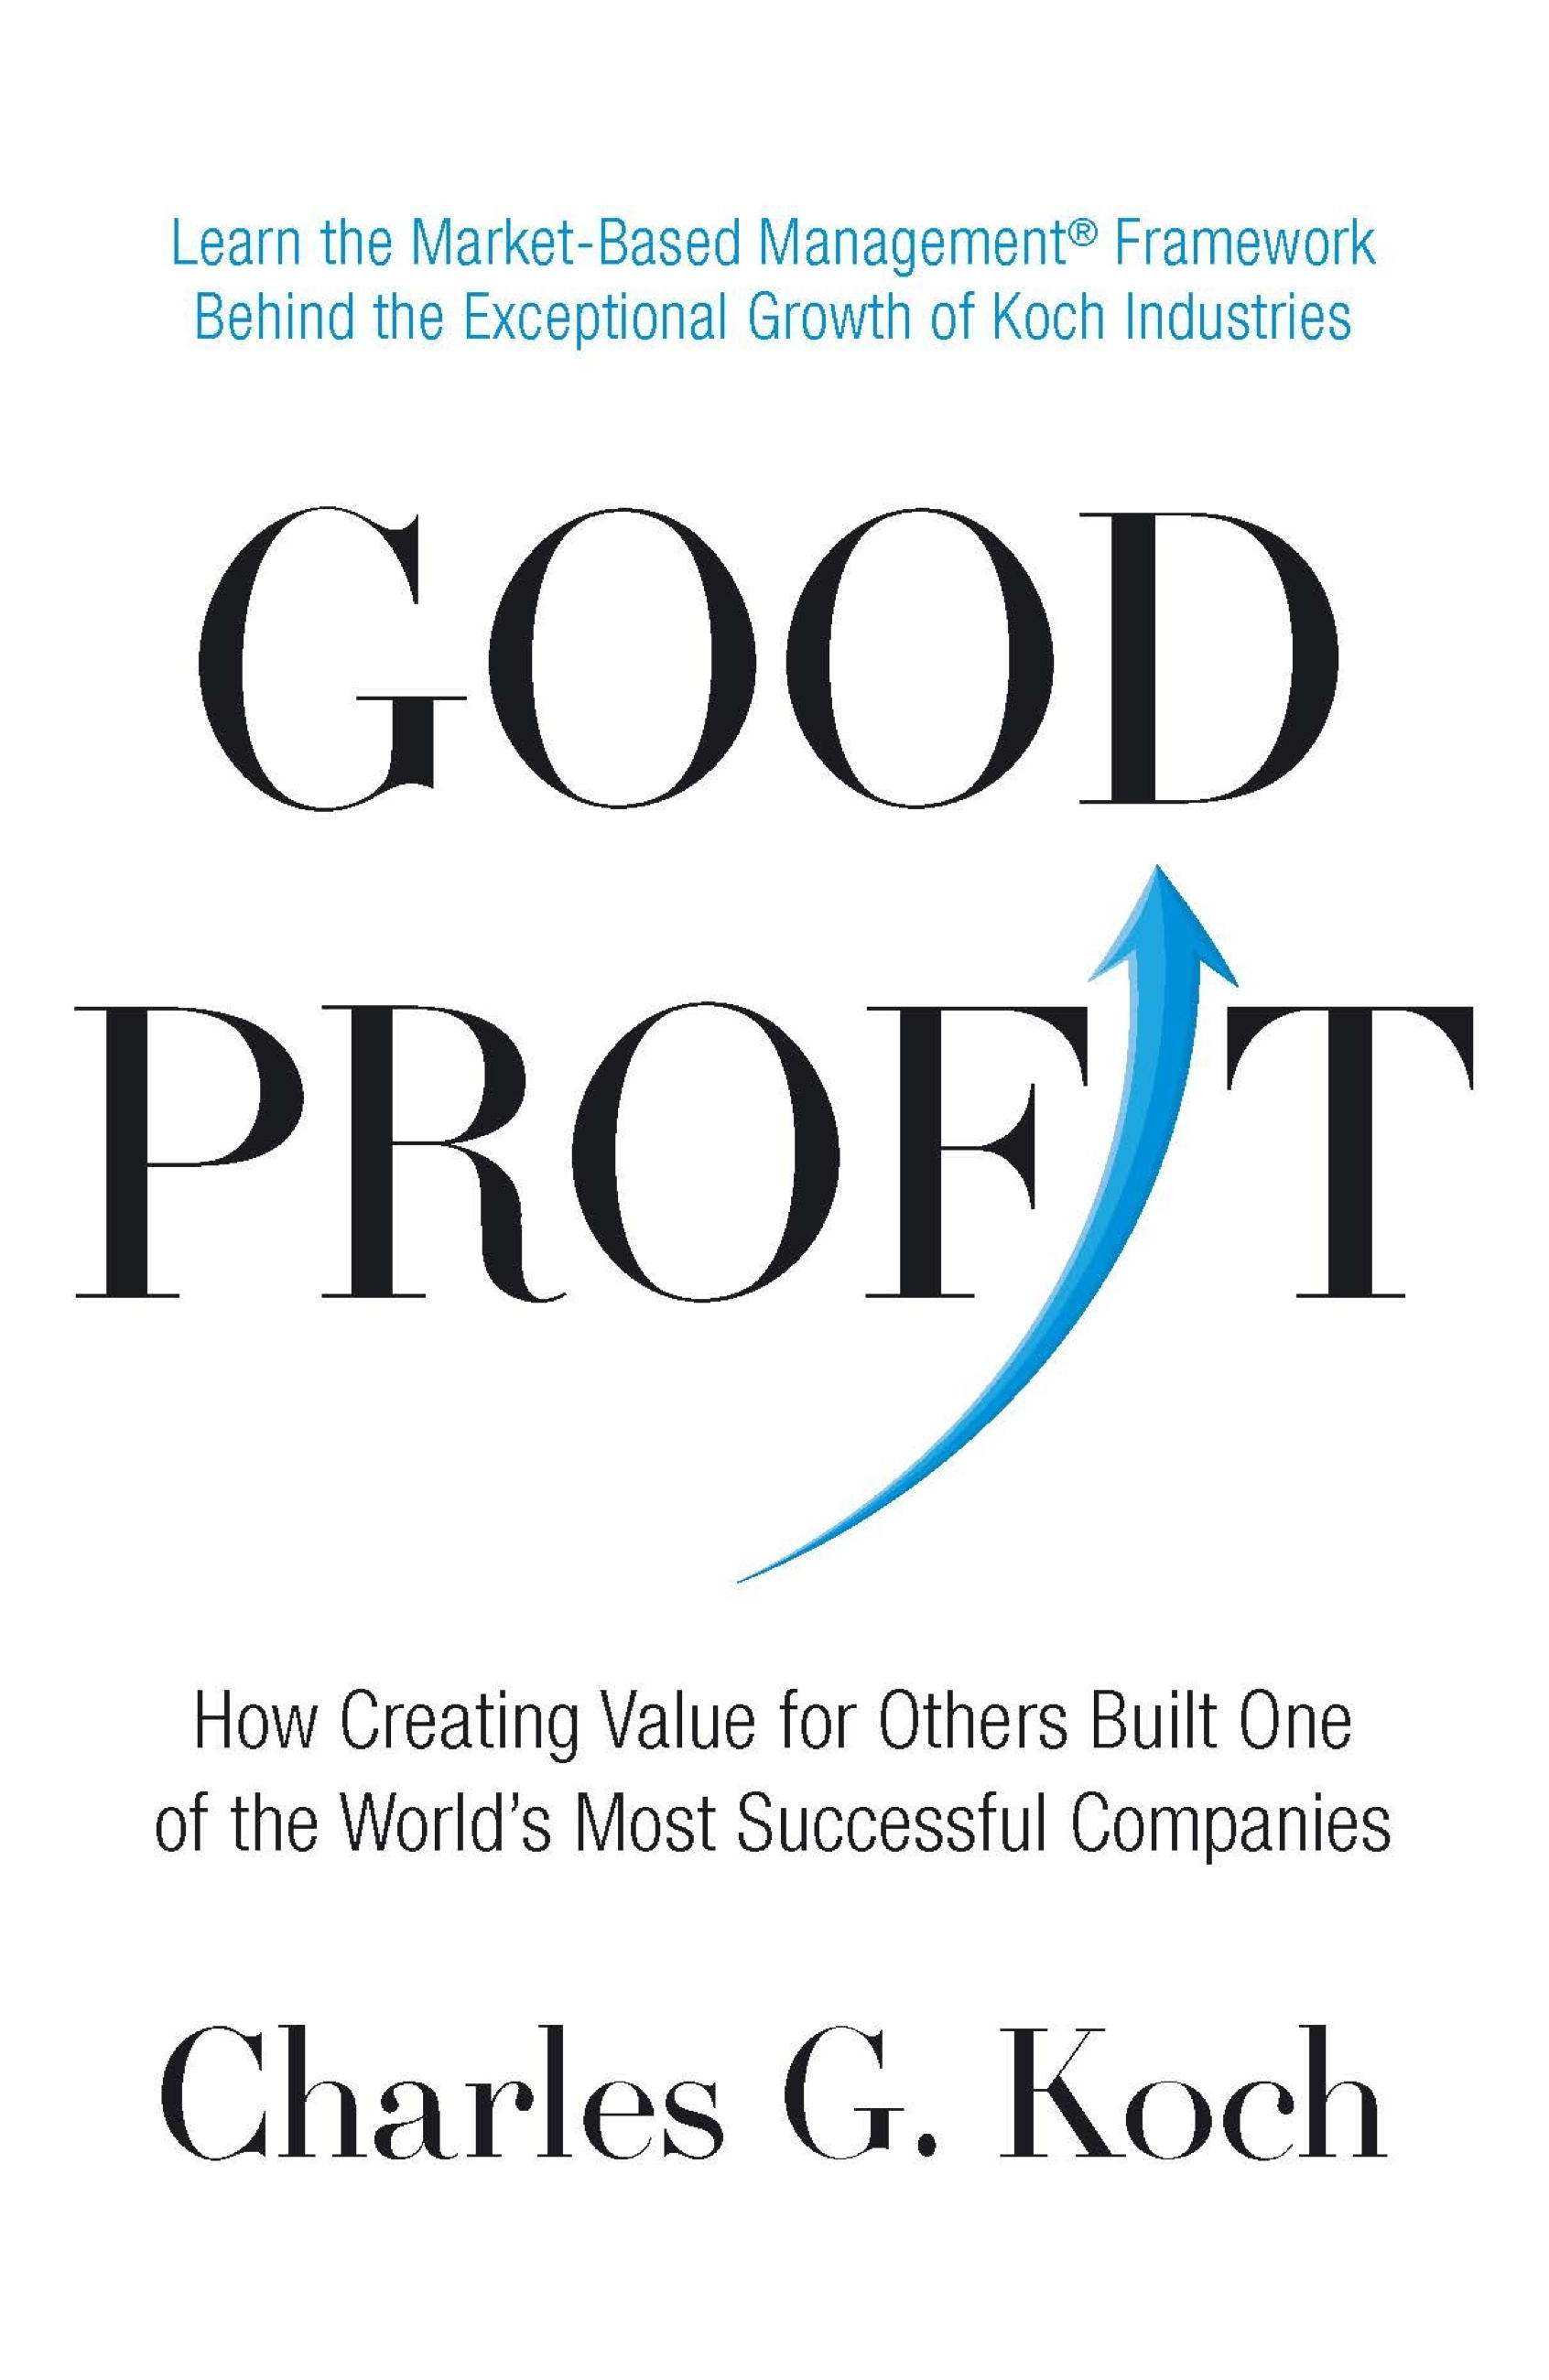 Download Ebook Good Profit by Charles G. Koch Pdf